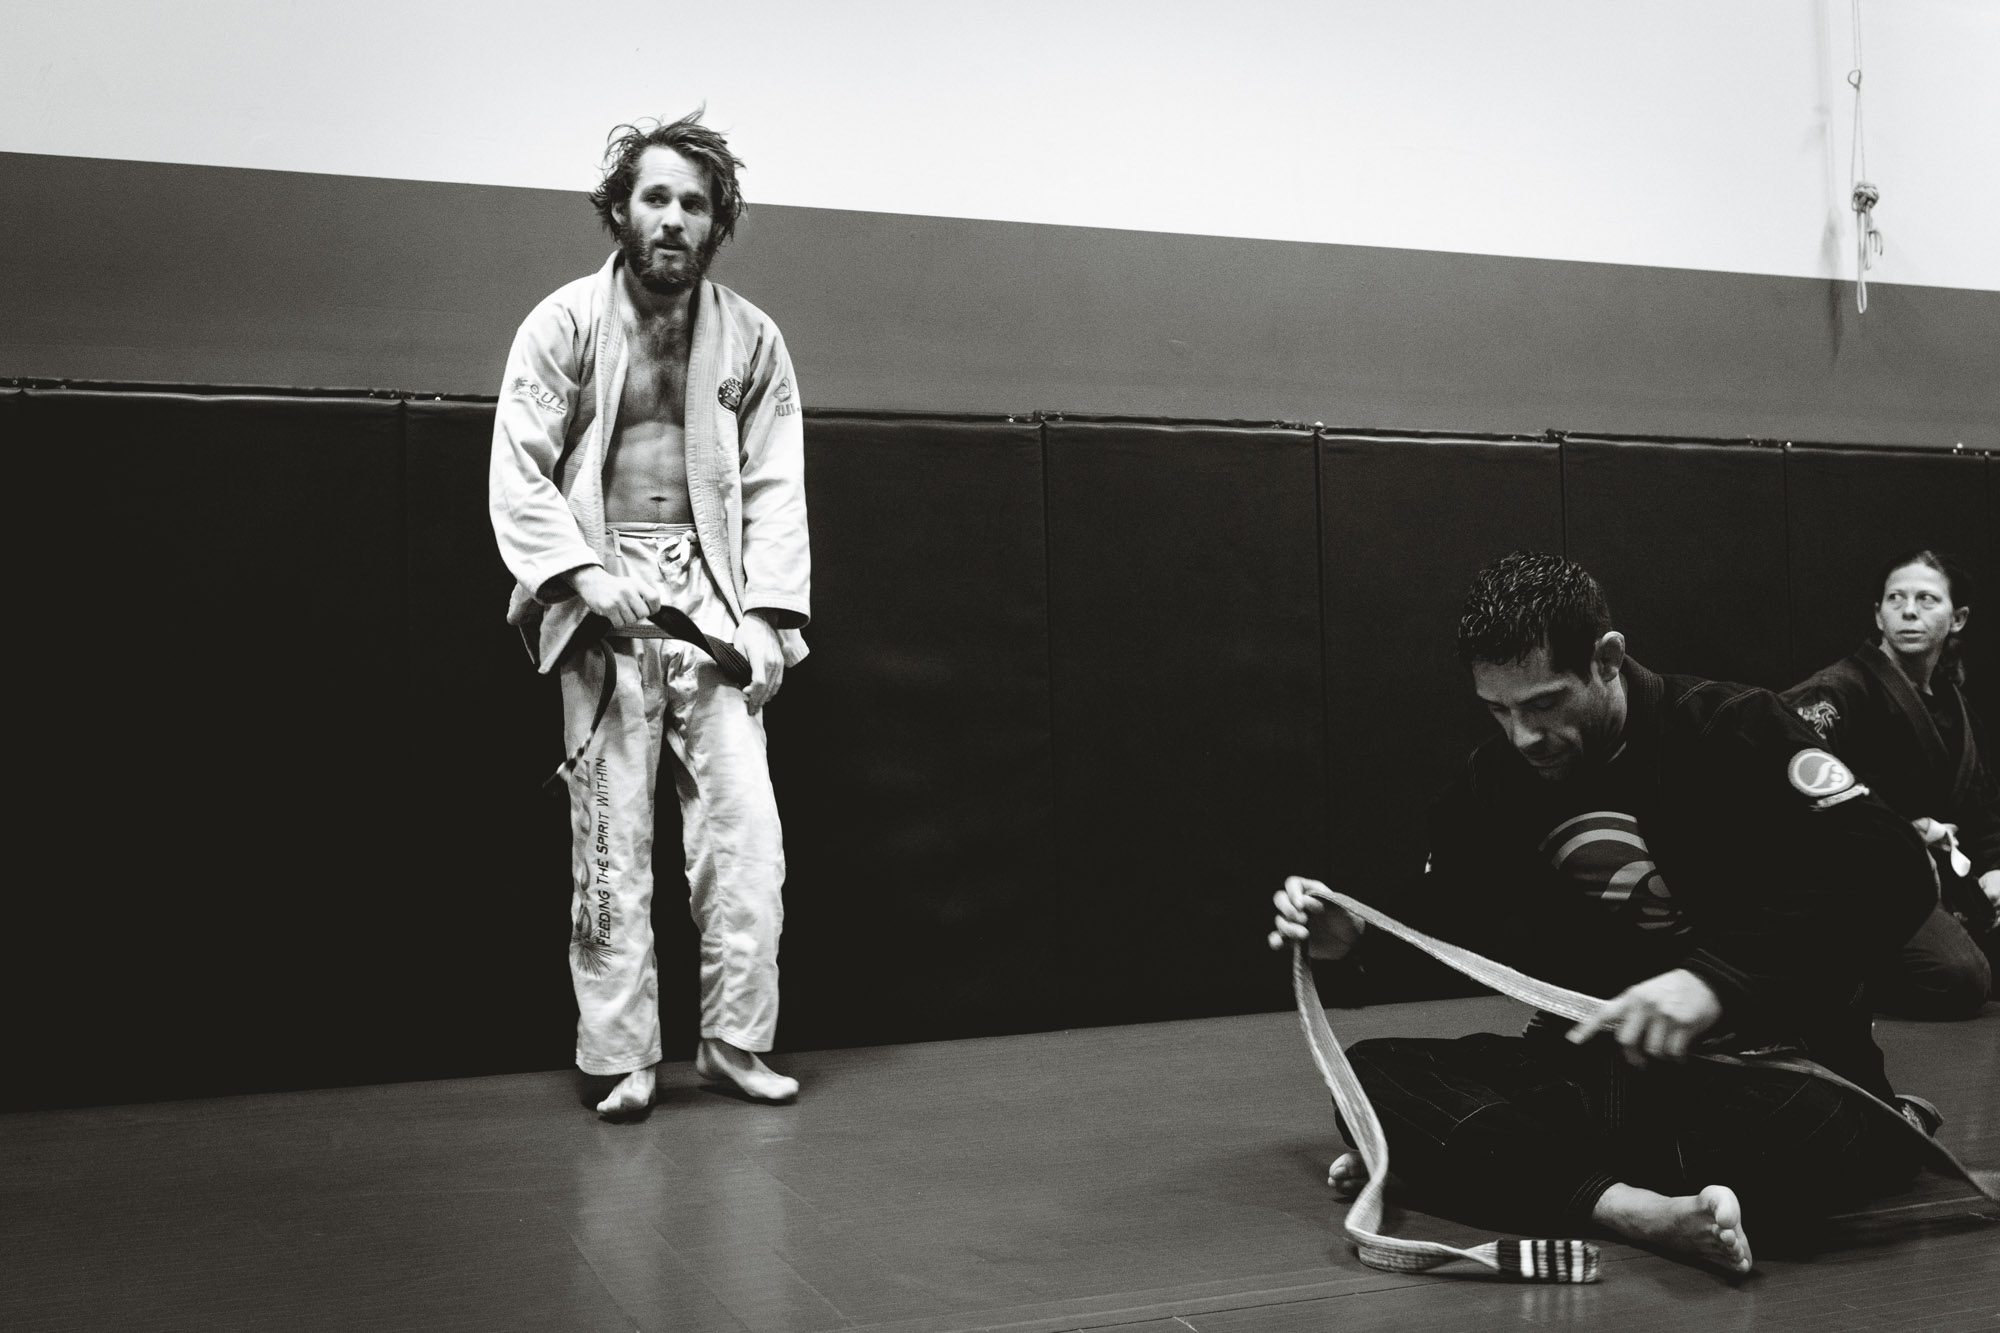 A dazed Hunter fixes his gi after a tough roll with Jorge